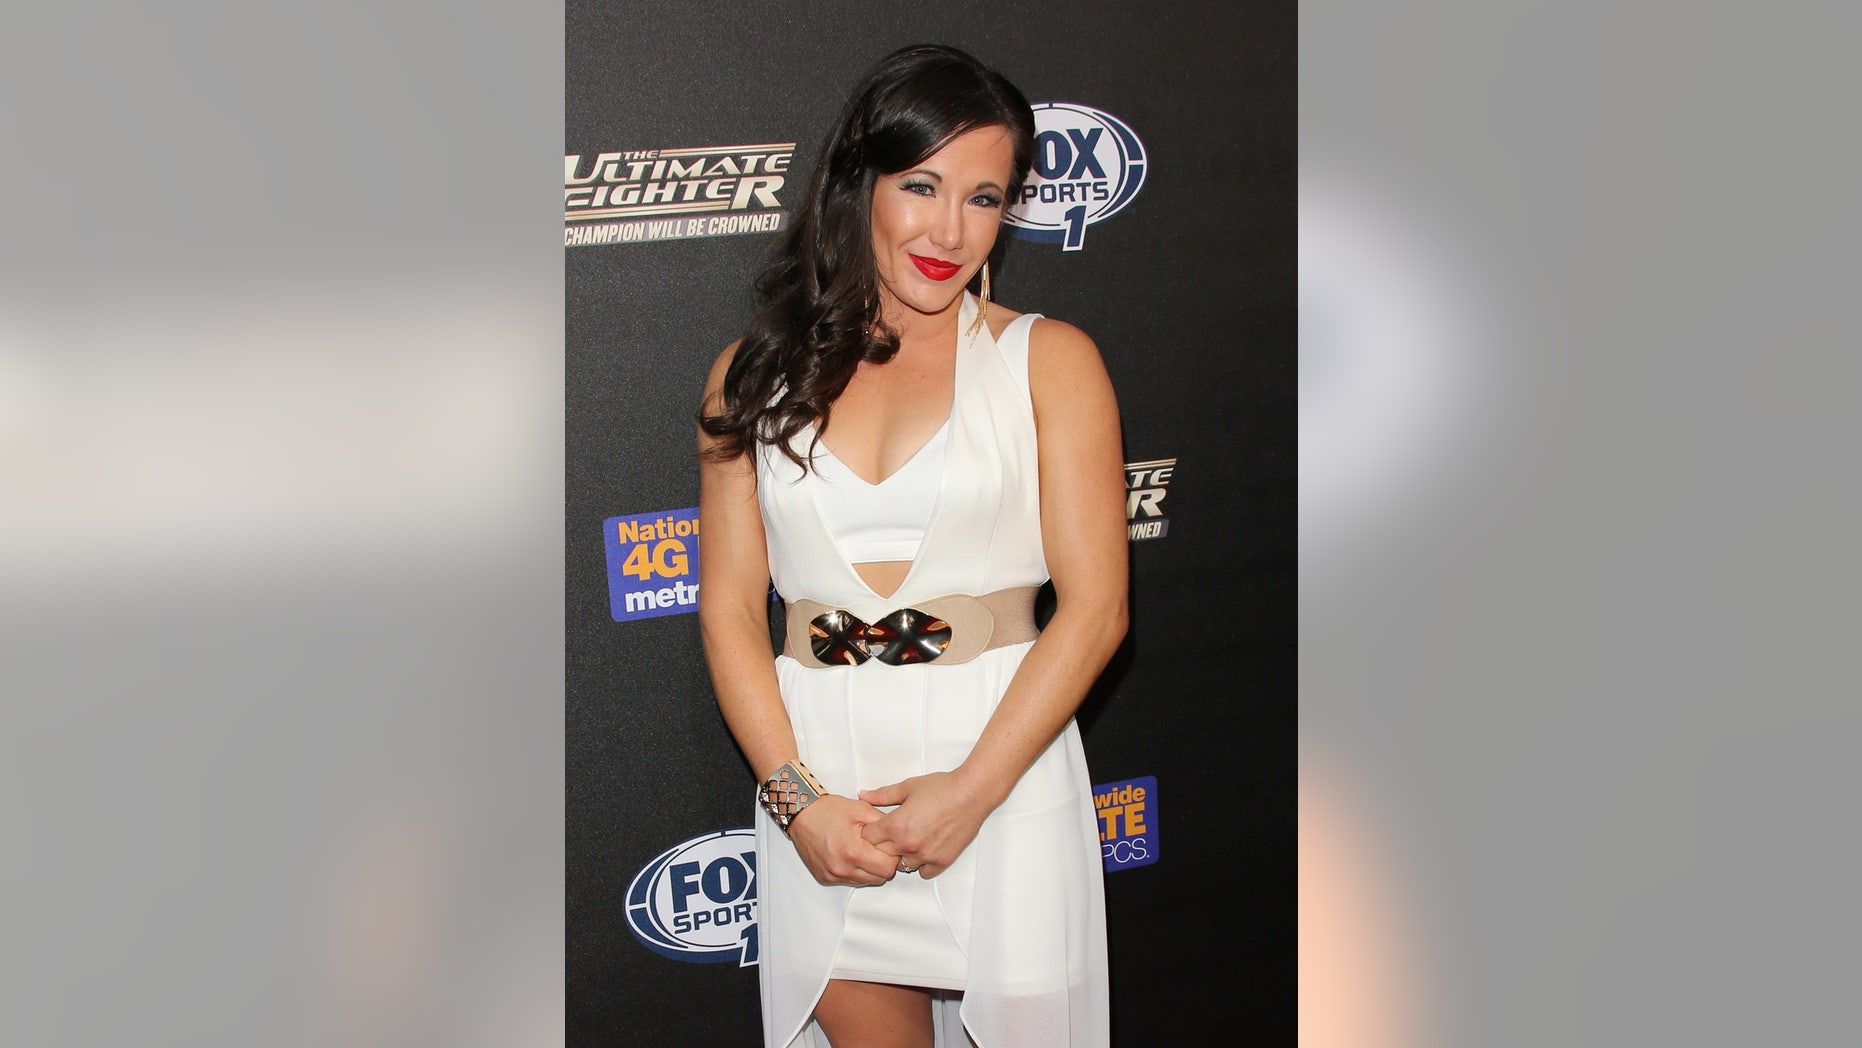 """UFC Fighter Angela Magana attends FOX Sports 1's """"The Ultimate Fighter"""" season premiere party at Lure in Hollywood."""